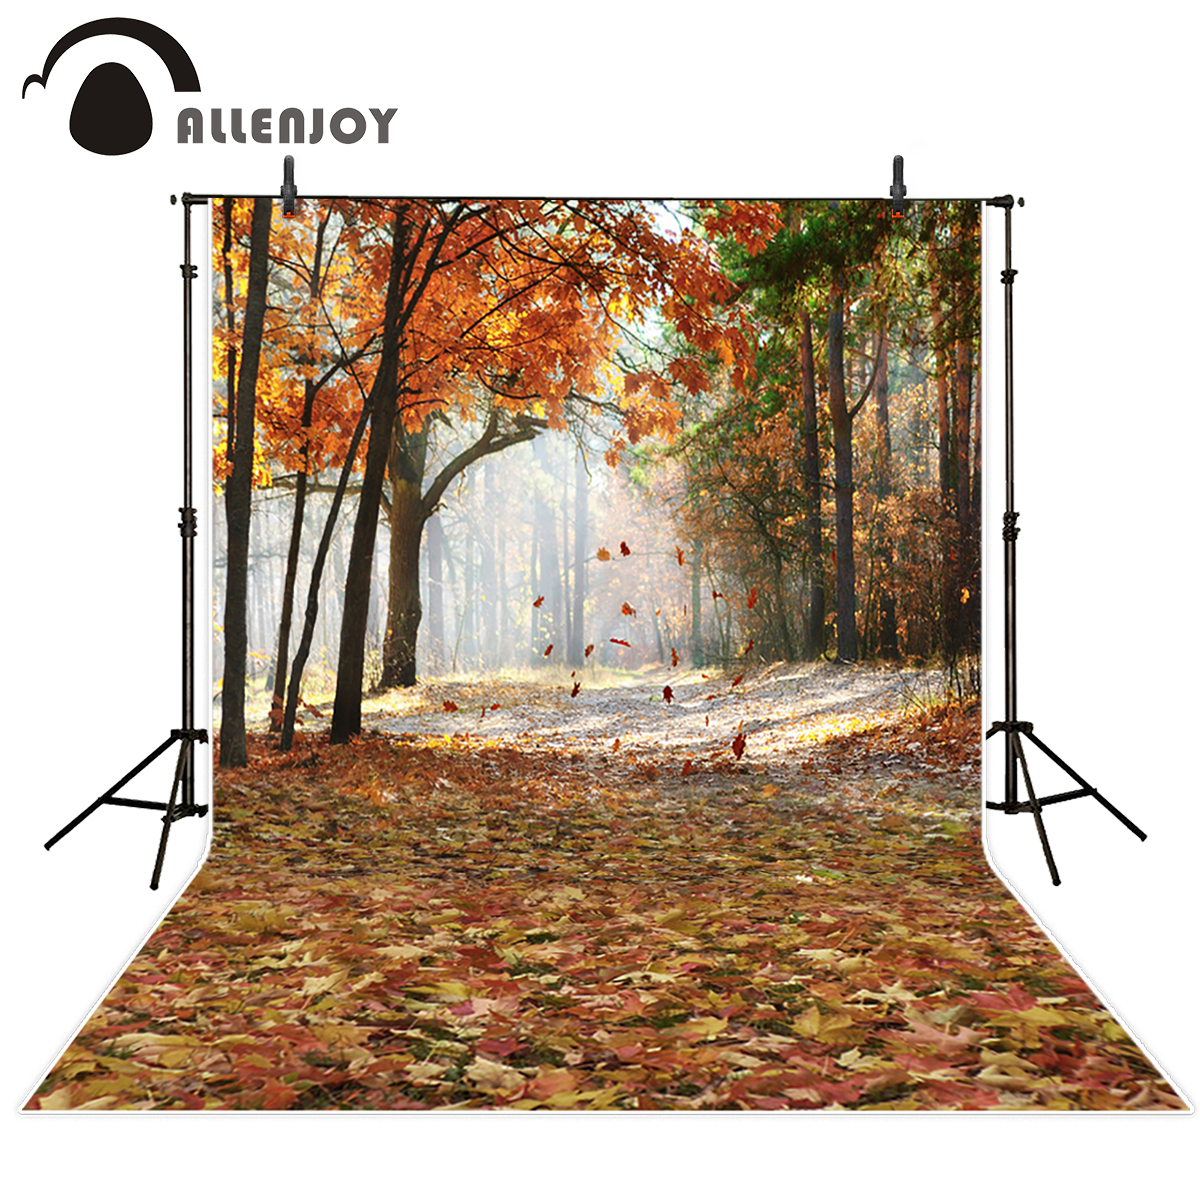 Allenjoy photography backdrops Autumn forest backgrounds smoke leaves photographic background fond studio photo vinyl photocall fond studio photo vinyle foto background photography backdrops autumn wood window photography backdrops